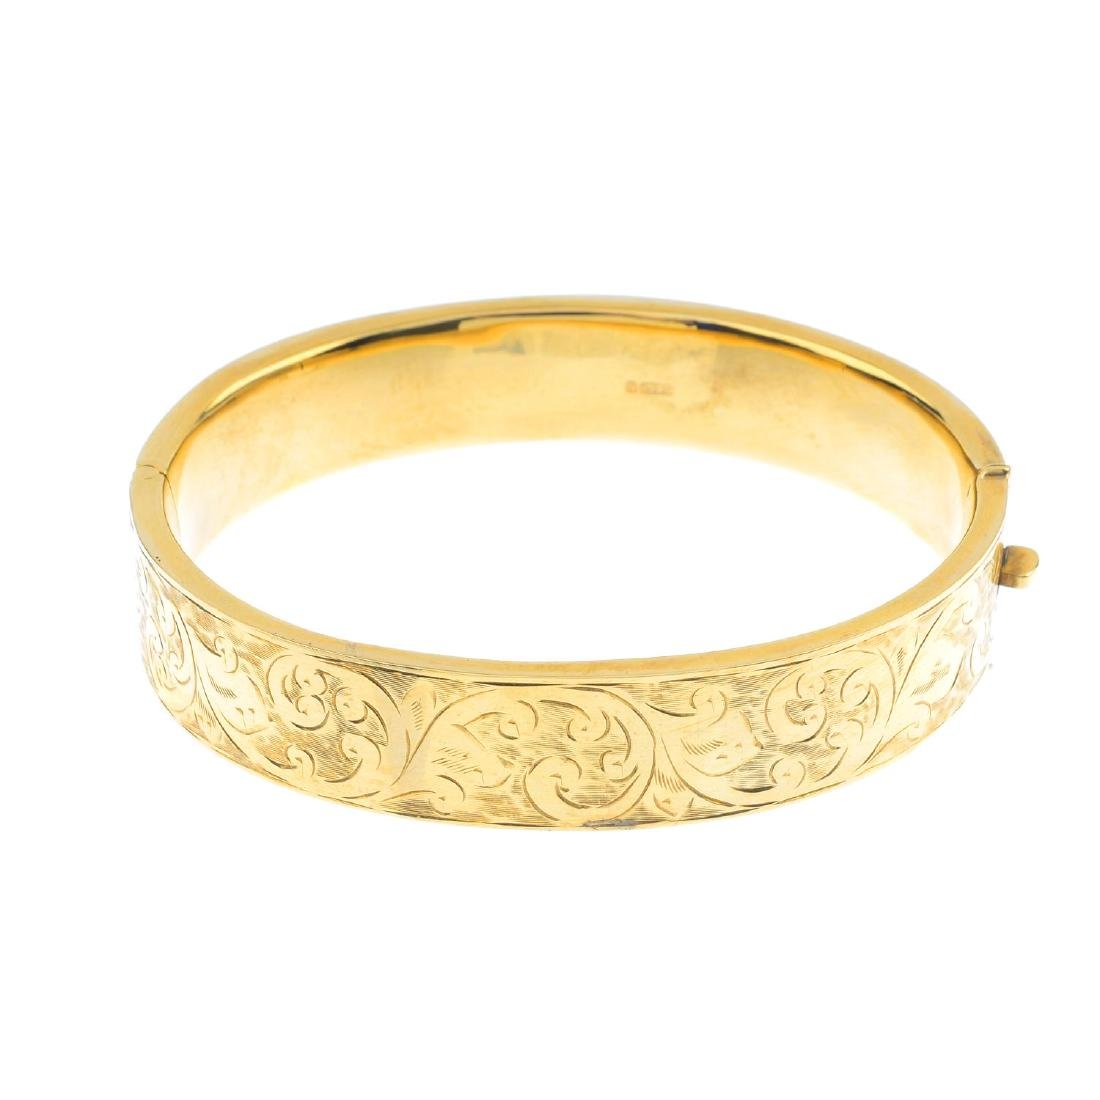 A 1960s 9ct gold hinged bangle. Designed as a scrolling